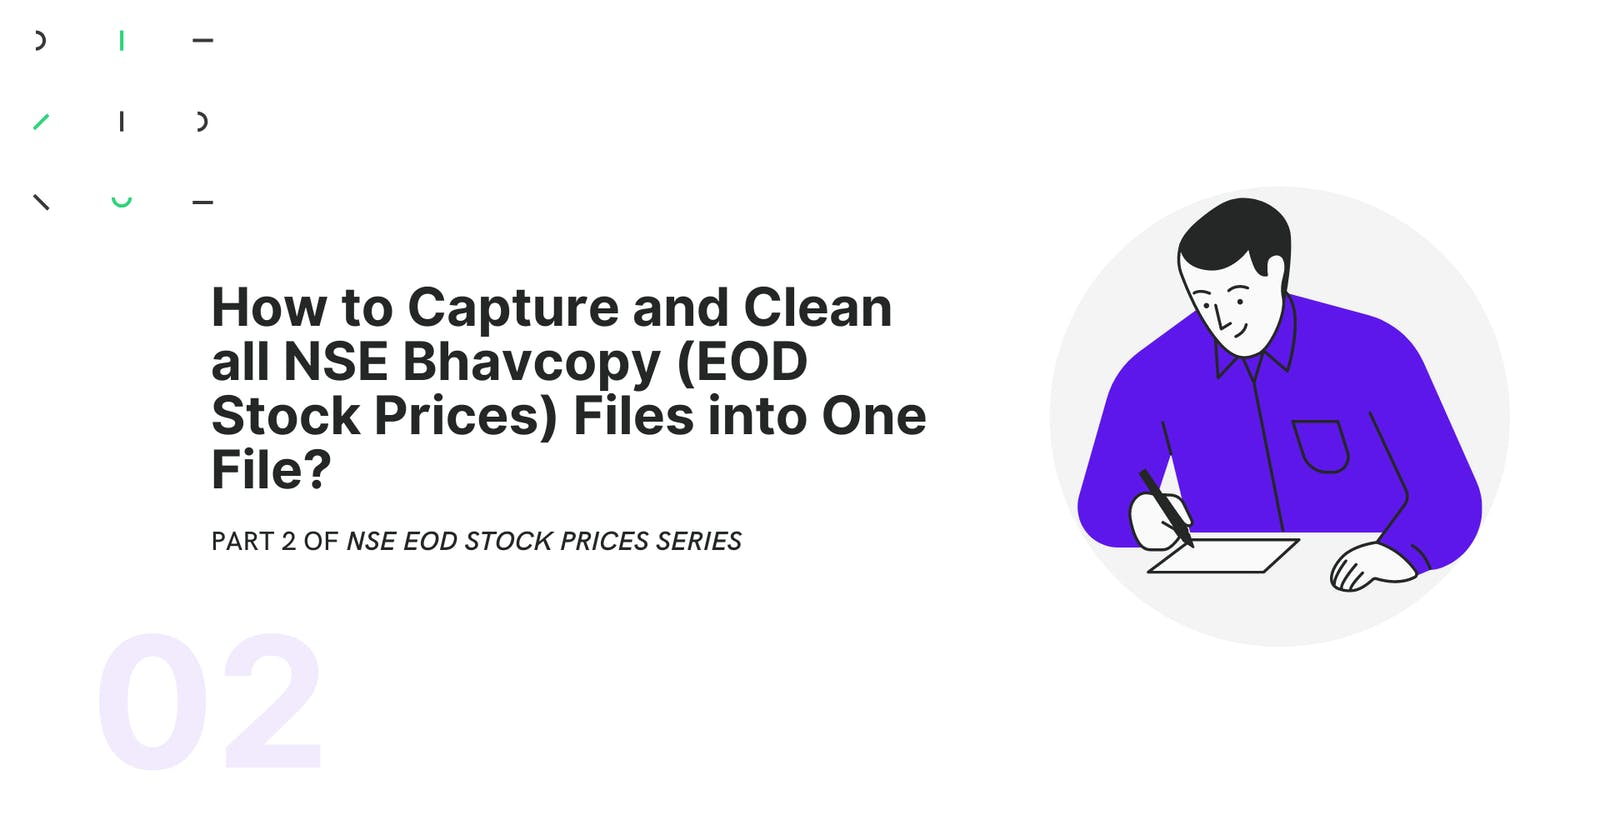 How to Capture all NSE Bhavcopy (EOD Stock Prices) Files into One File?